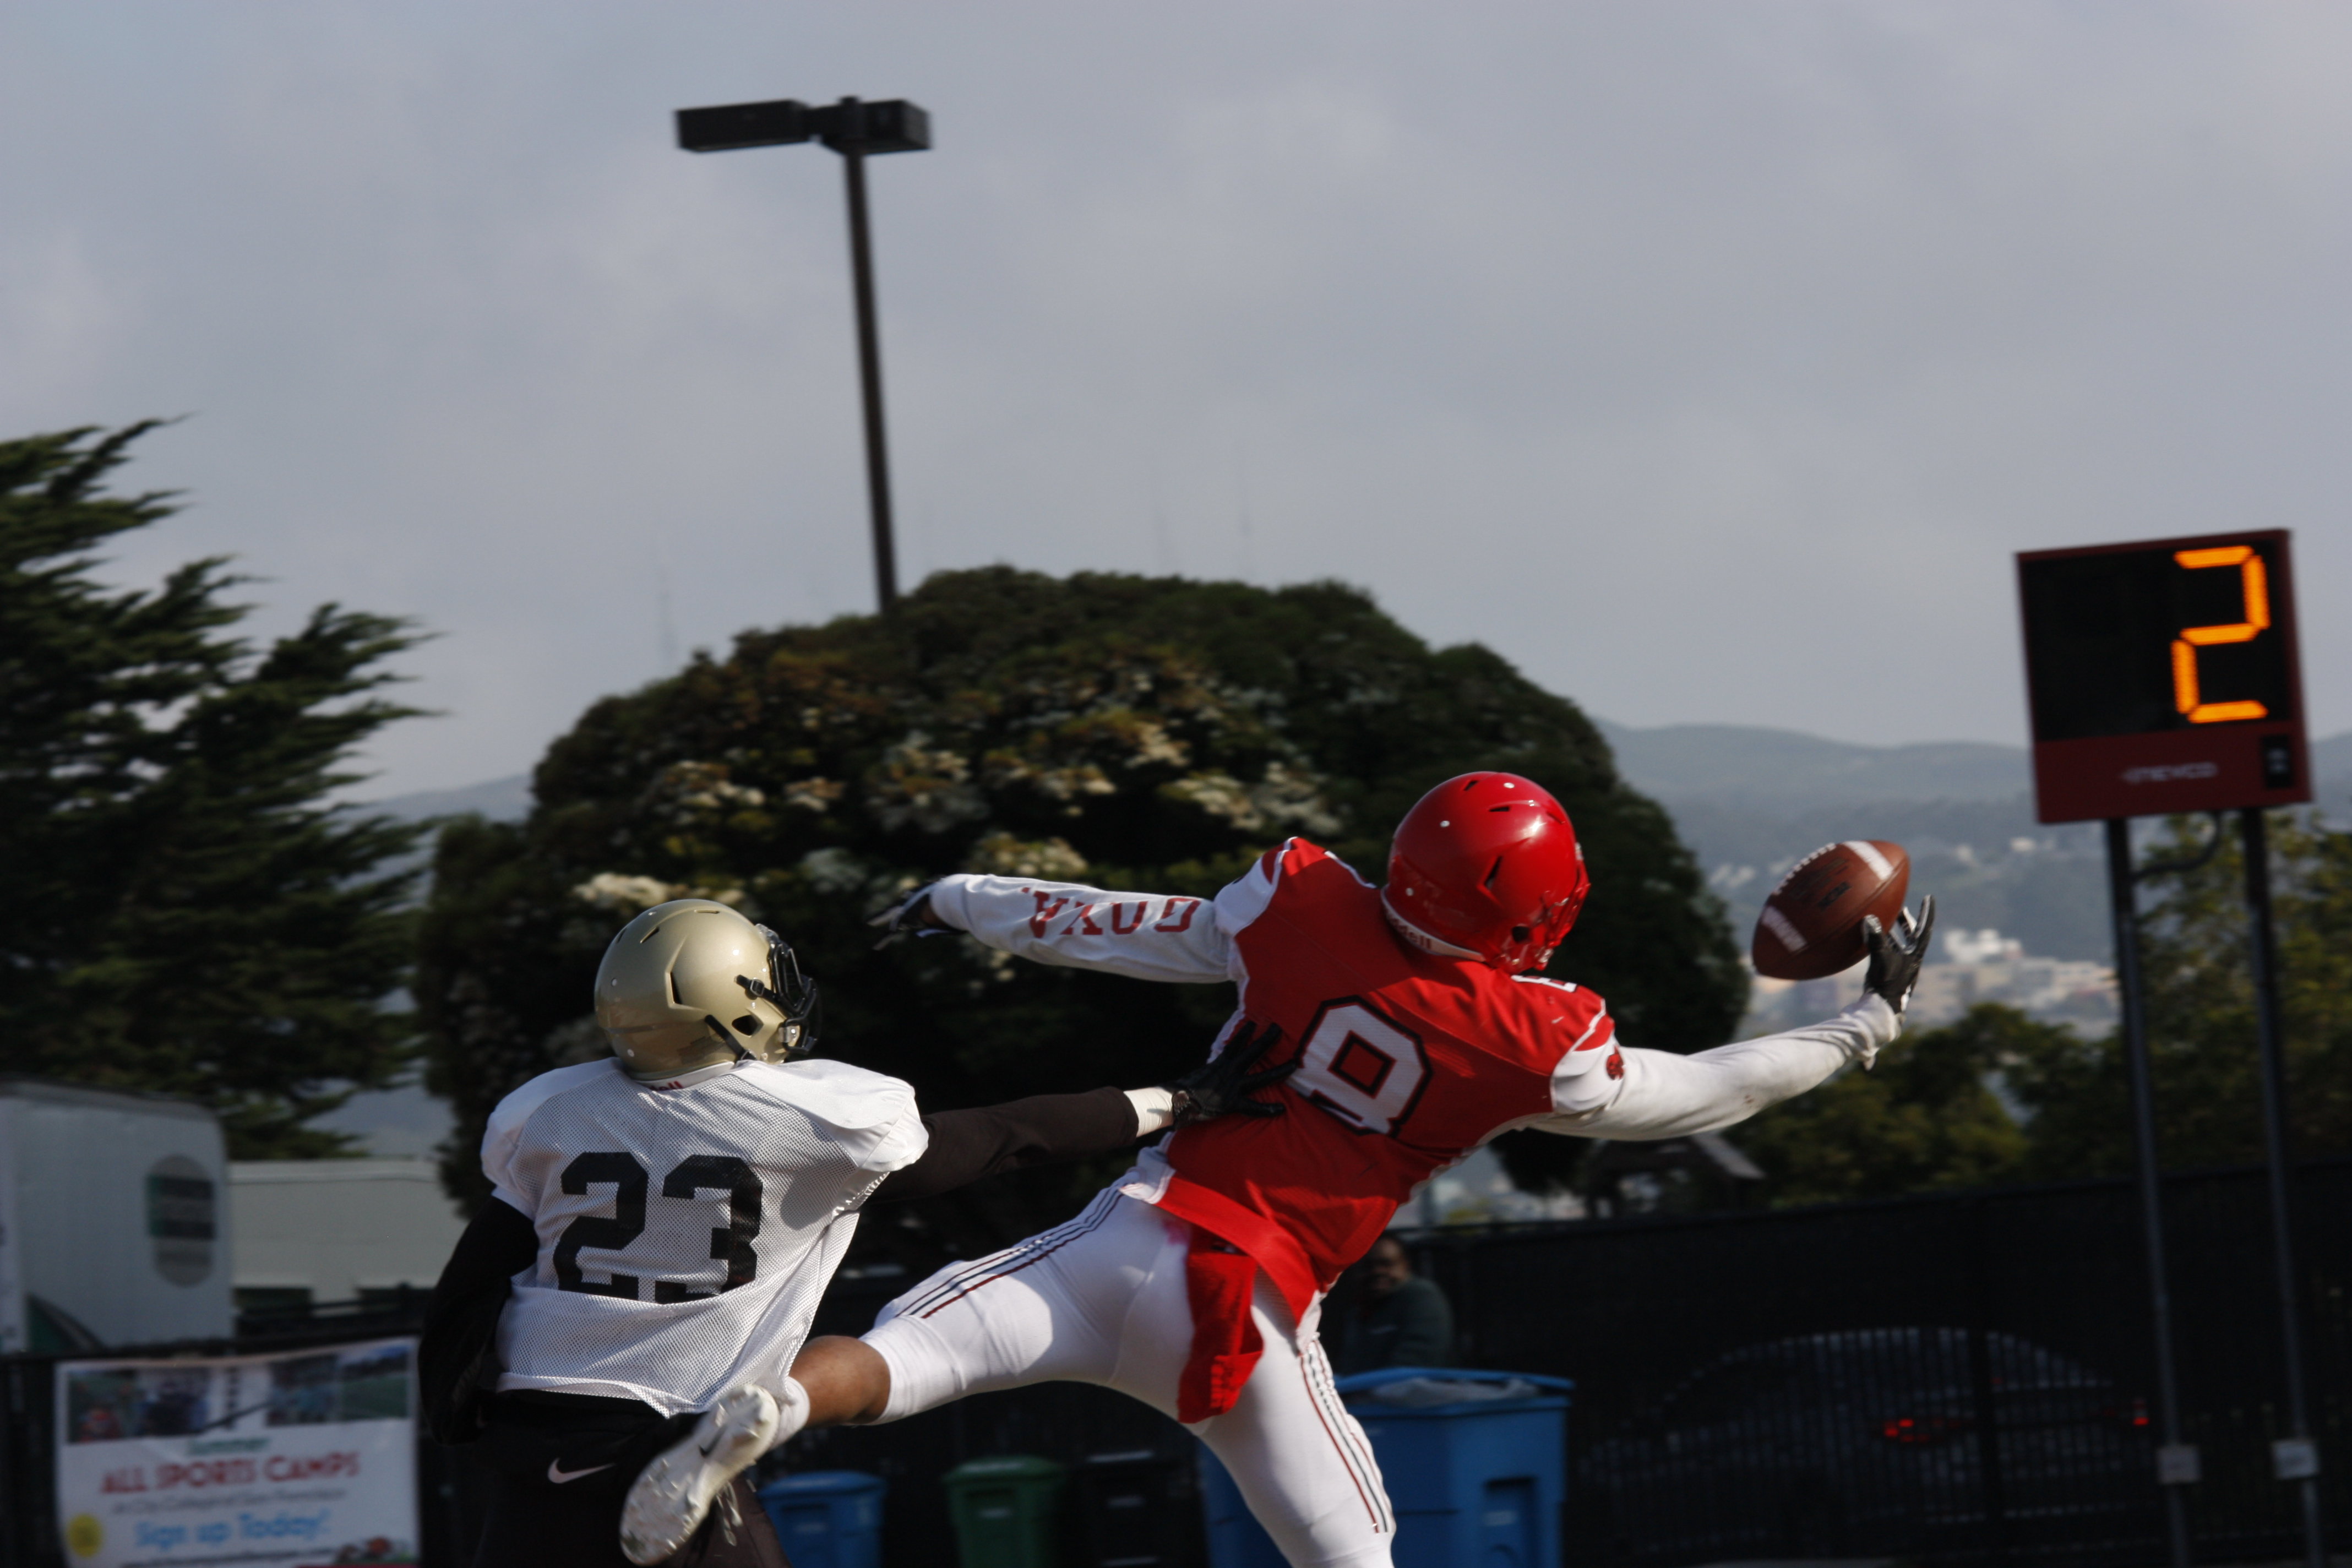 City College wide reciever freshman Christian Willis (#8) makes a one handed catch against San Juan Delta College on Wednesday August 22, 2018. Photo by Peter J. Suter/The Guardsman